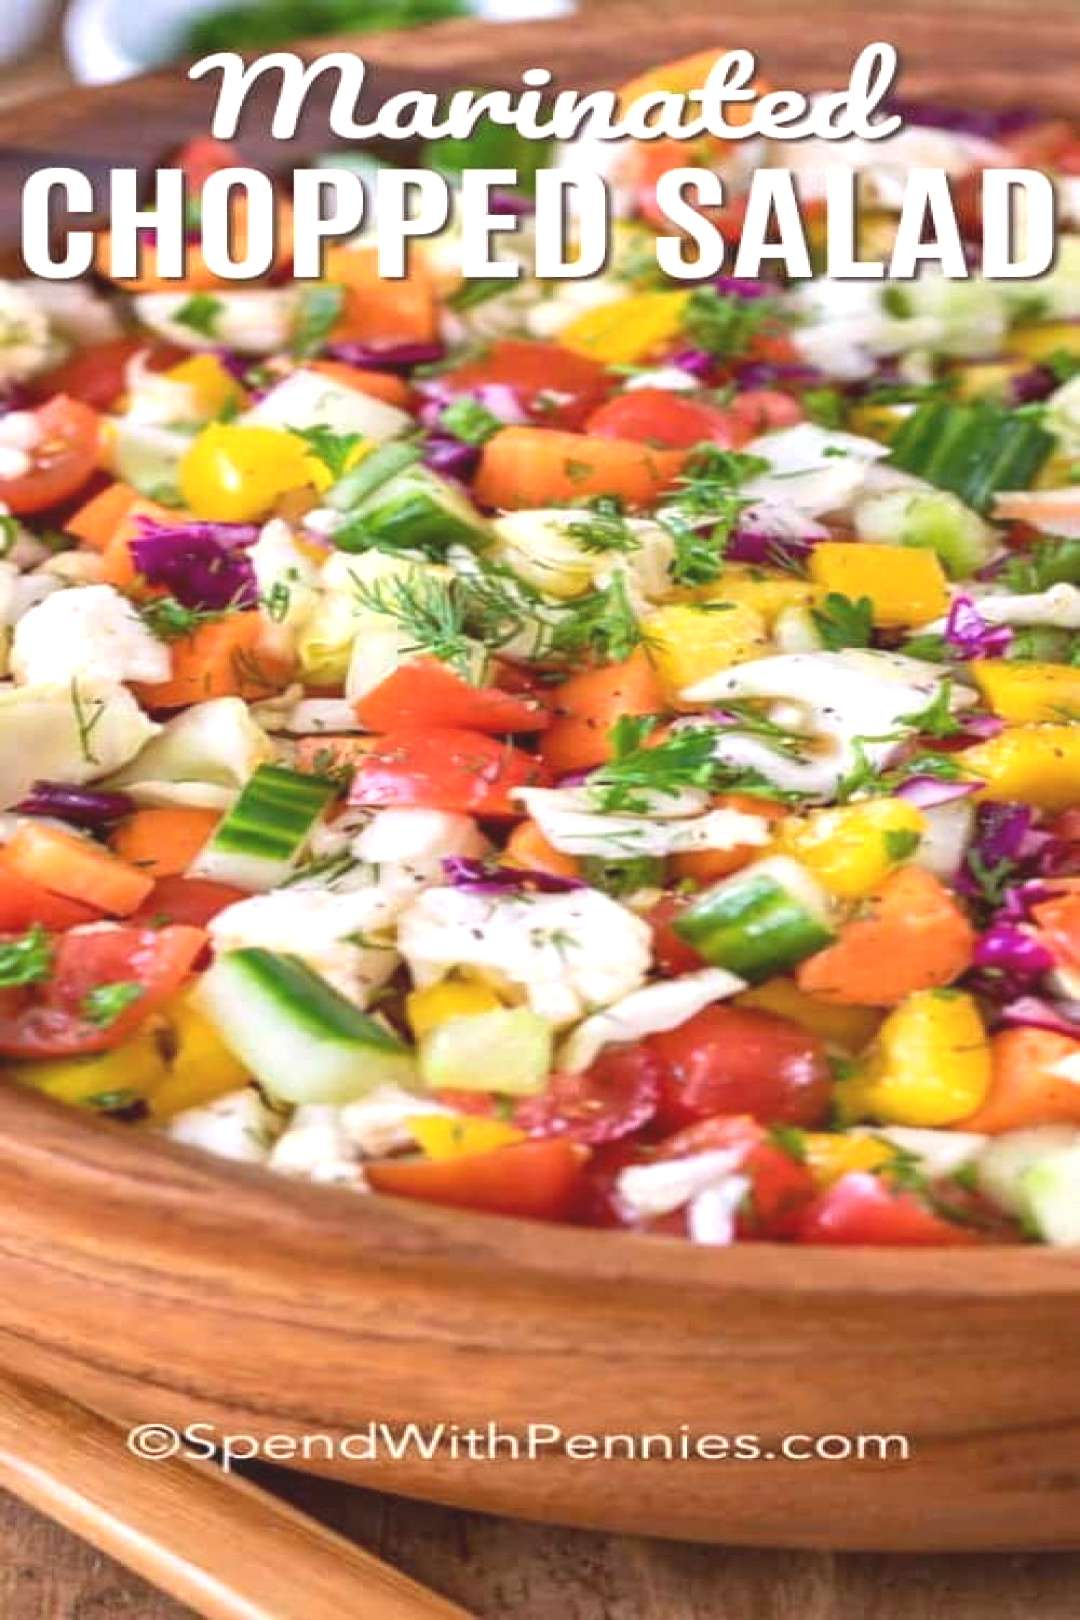 Recipes Vegetables salad recipes salad recipes salad recipes salad recipes salad recipes salad reci